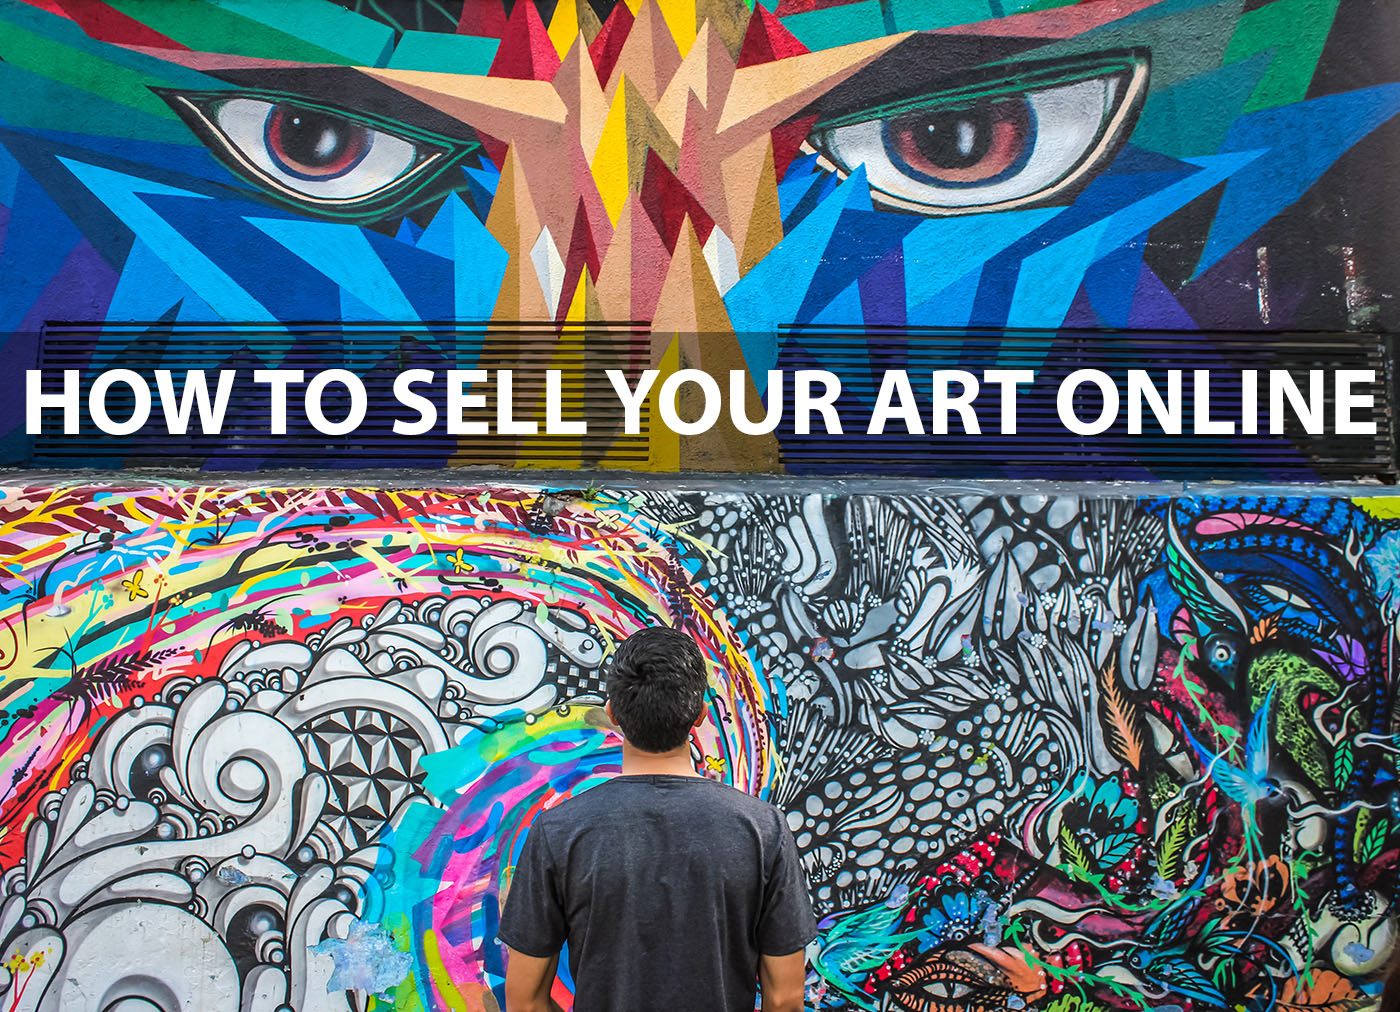 Sell Art Online & Make Money on Shopify: The Beginner's Guide